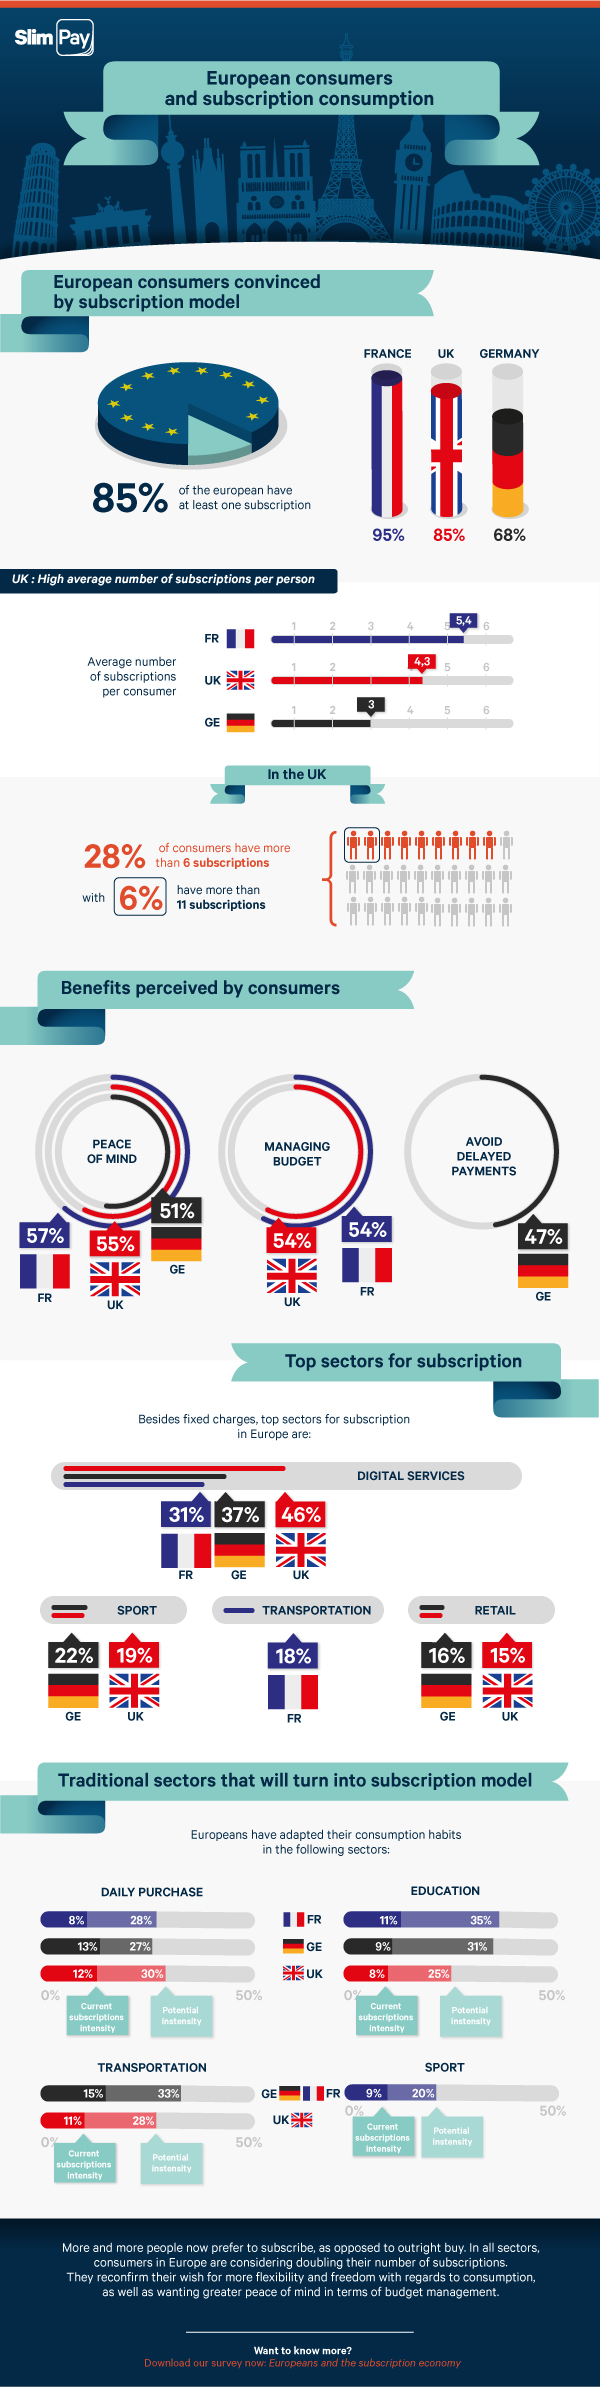 subscription consumption in Europe